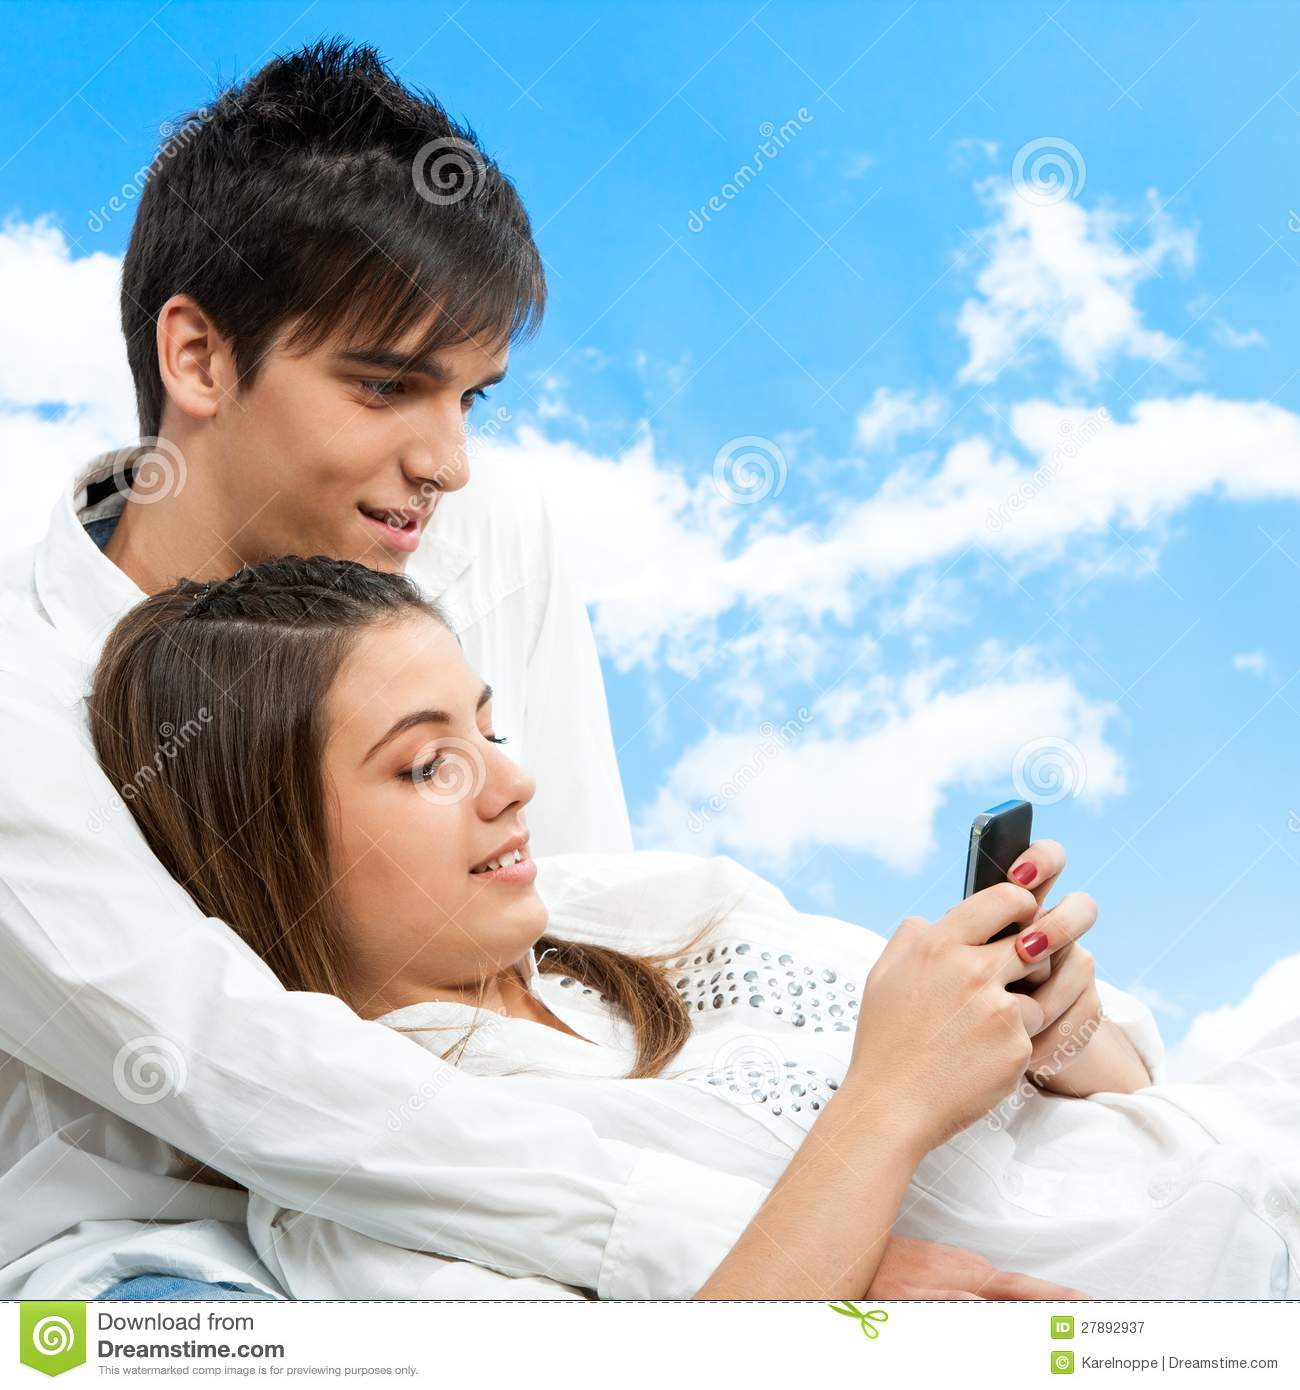 Opinion free amateur couple picture